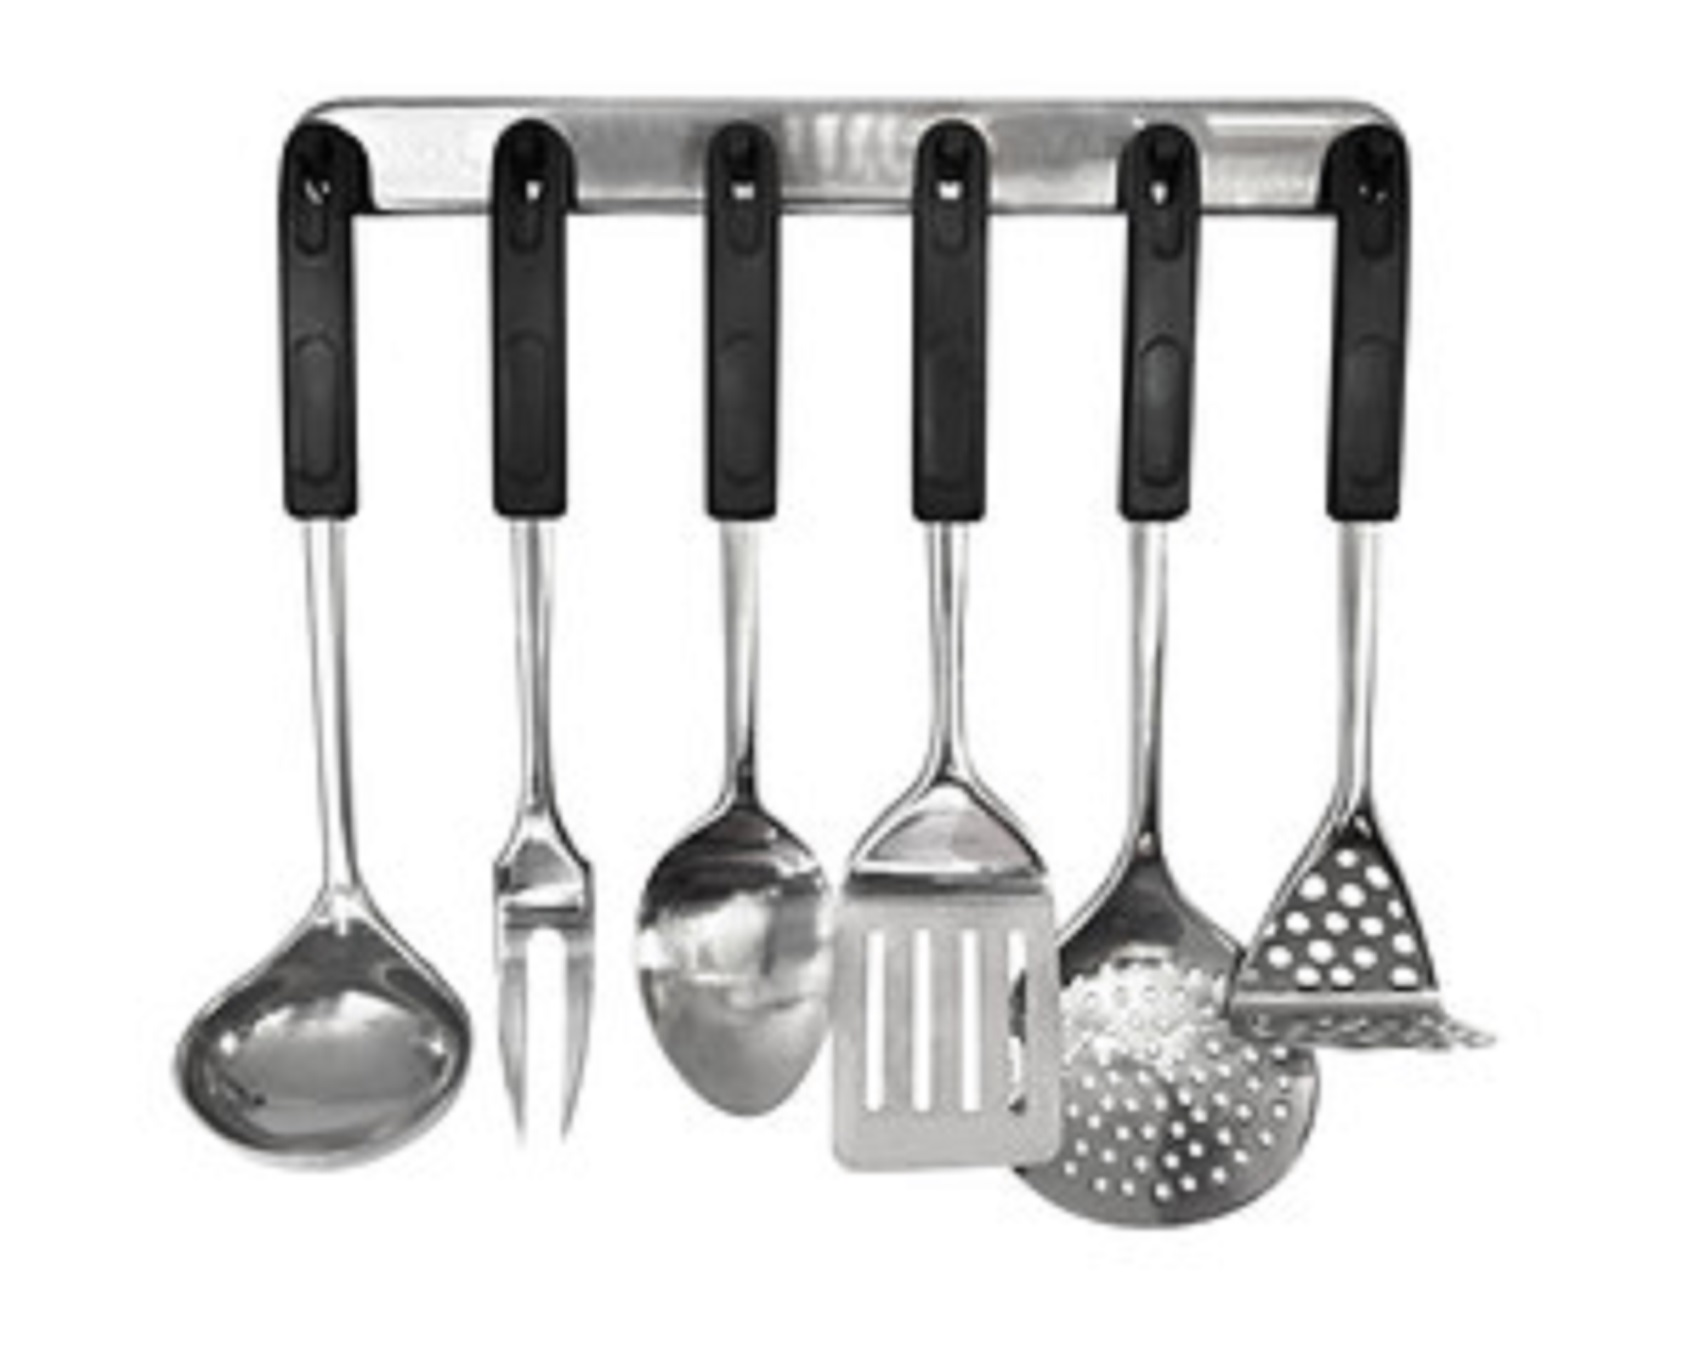 group the kitchen utensils in order to have an effective feng shui kitchen design